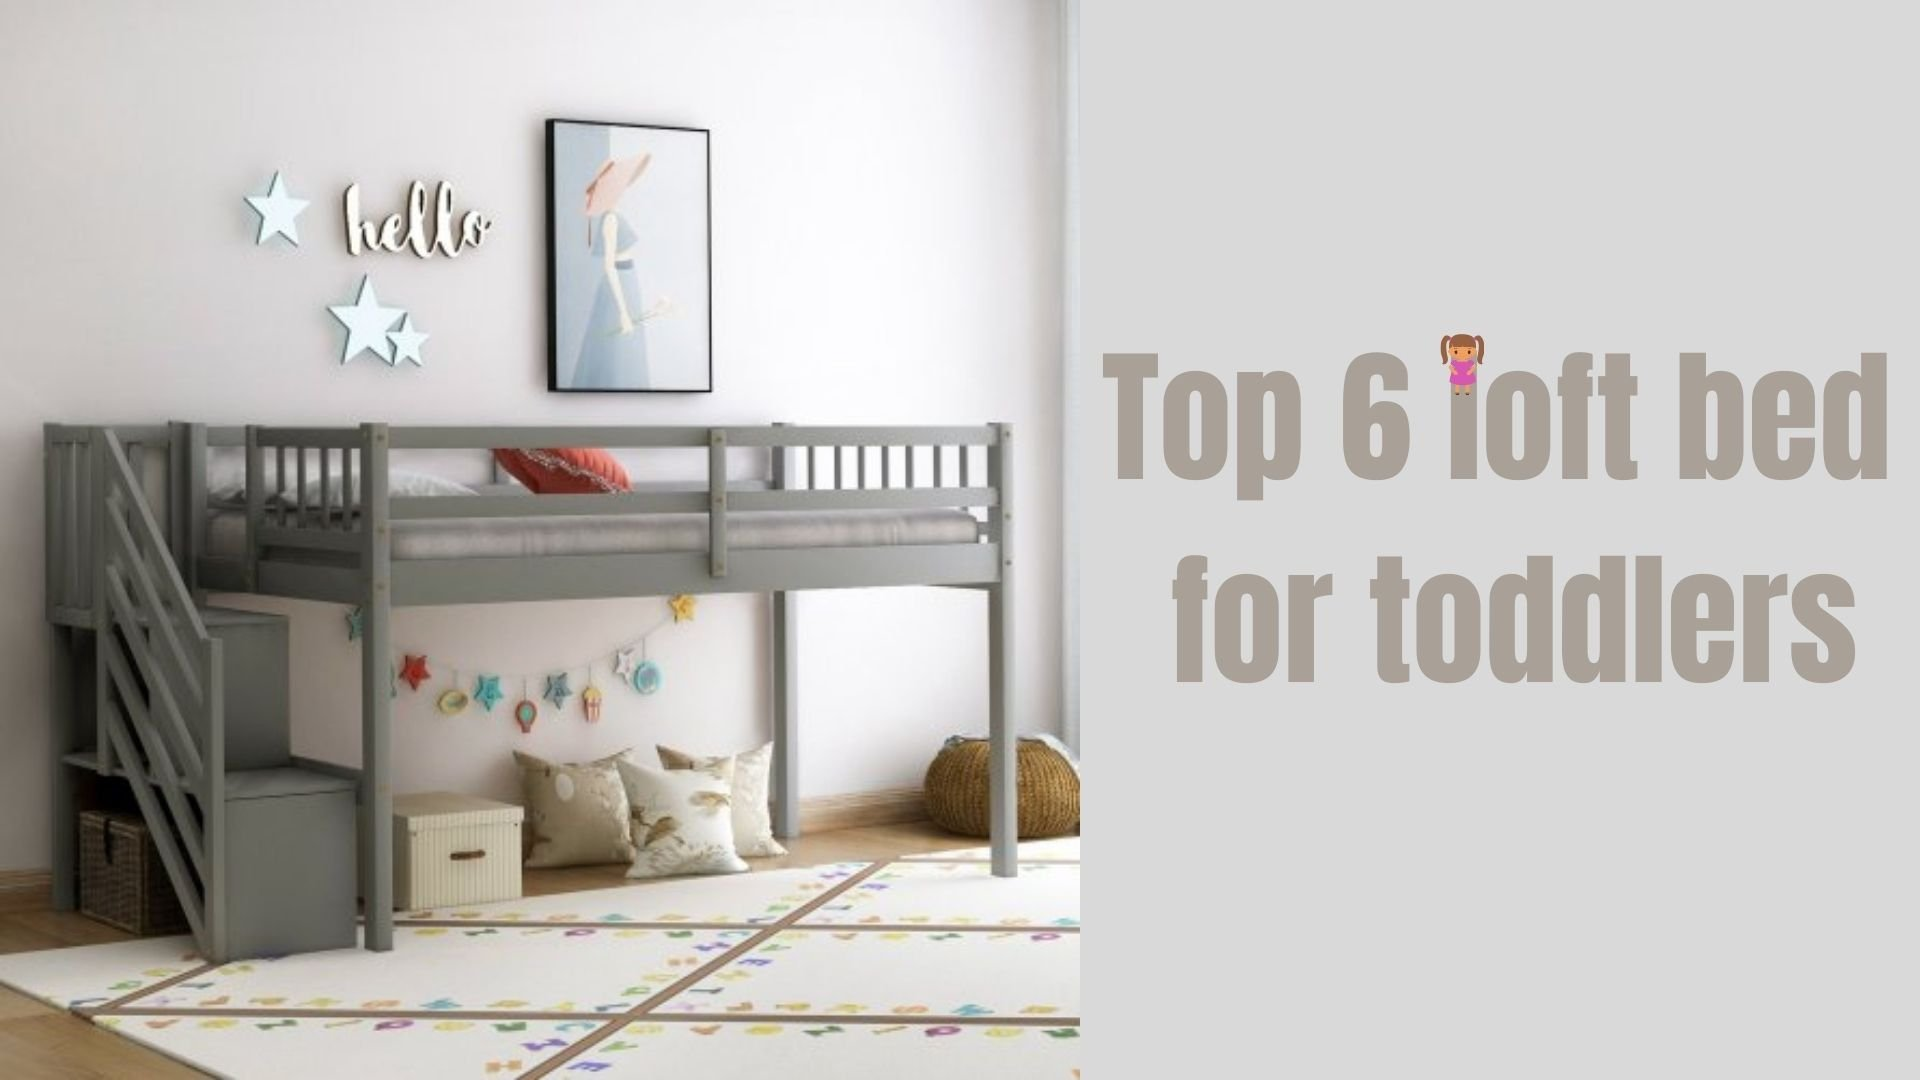 Top 6 loft bed for toddlers